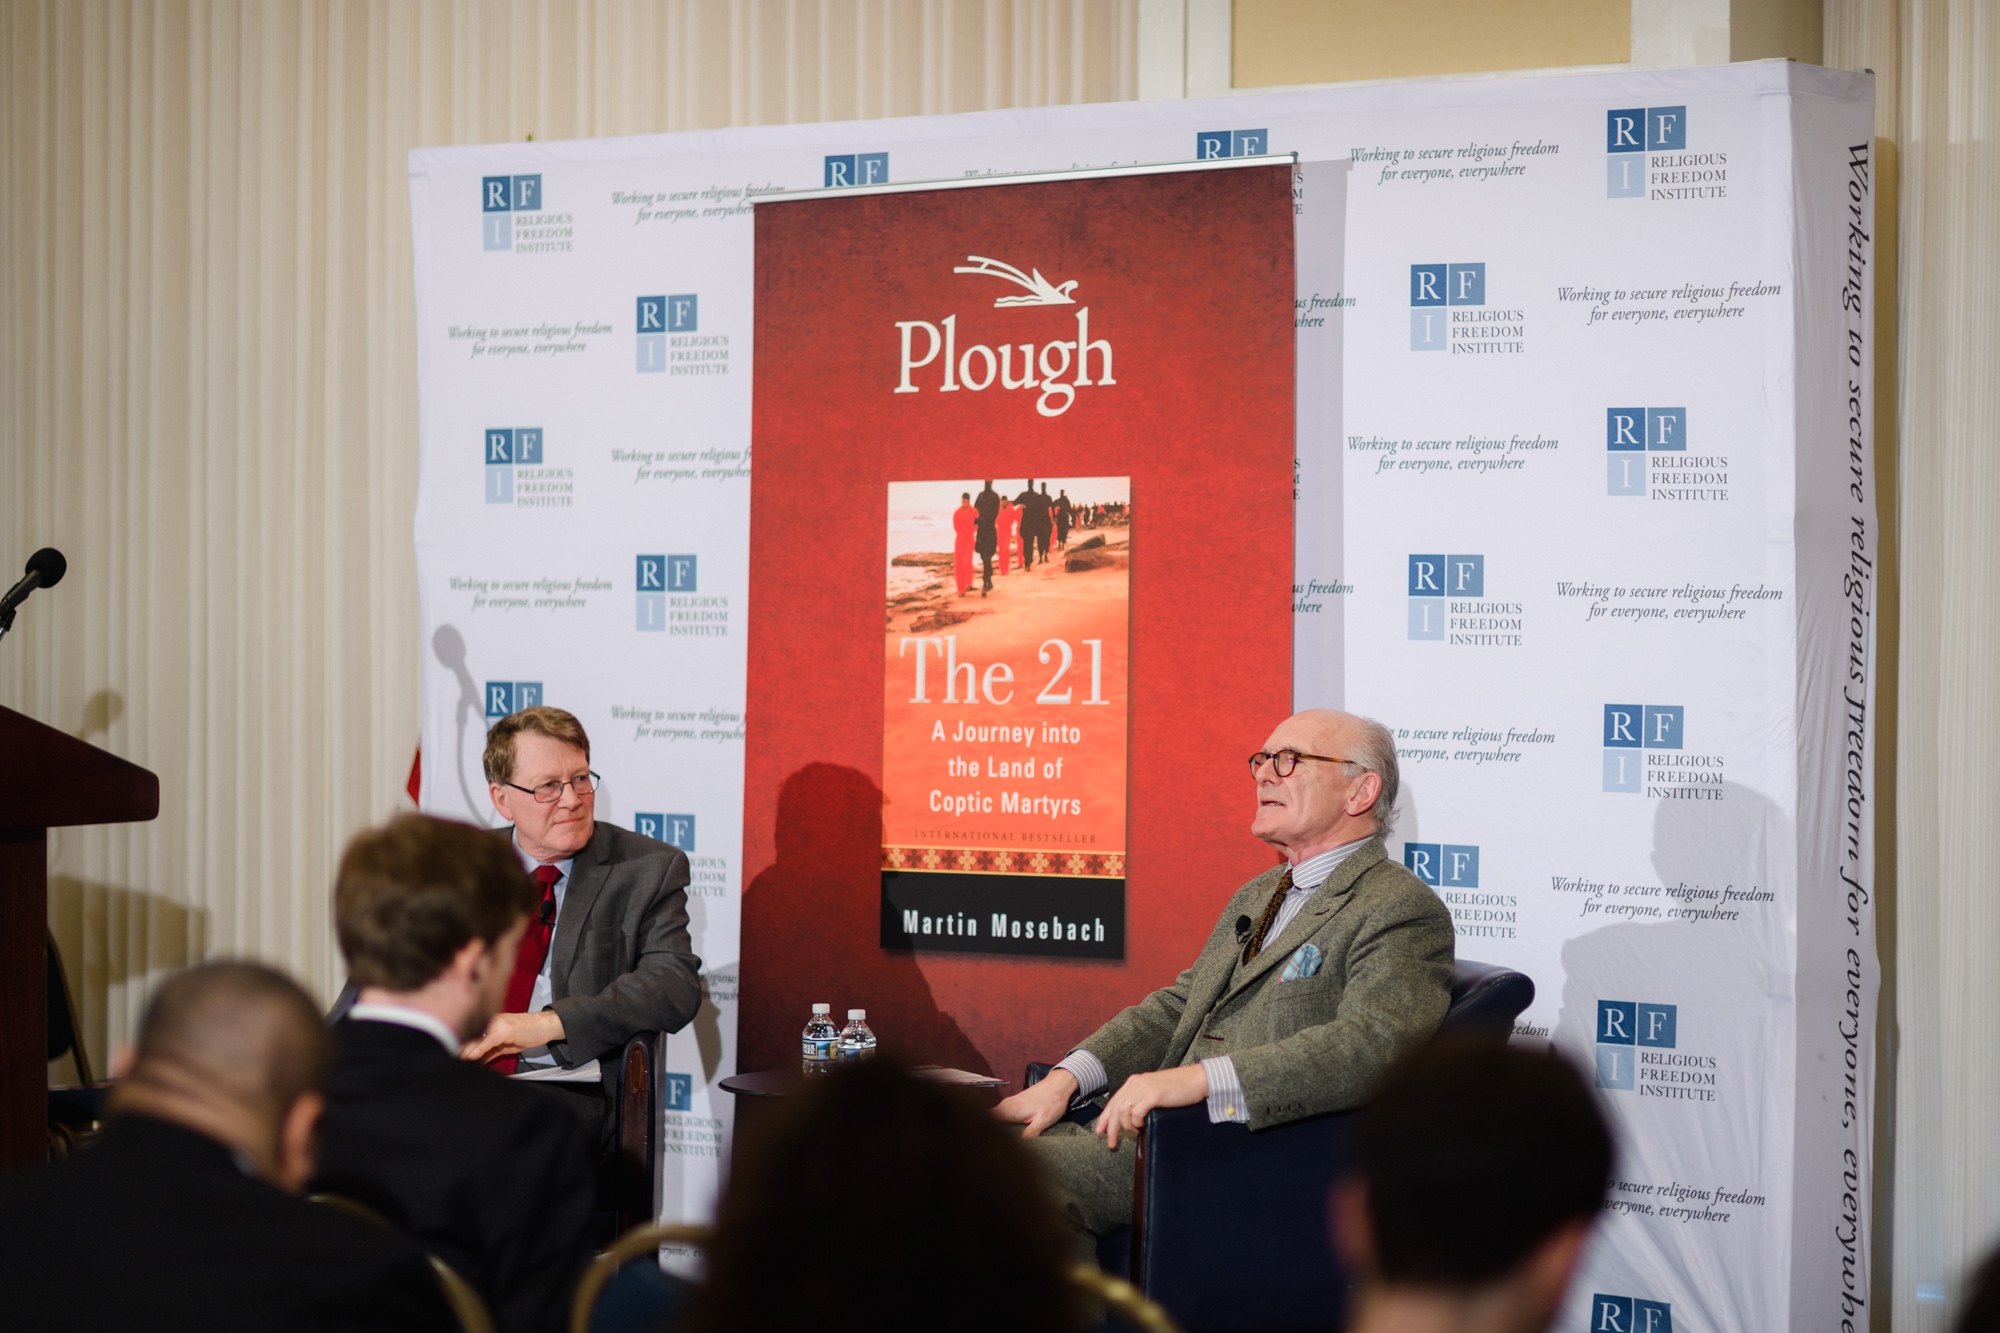 037 - February 12th 2019 Religious Freedom Institute at National Press Club - Photo Nathan Mitchell.jpg